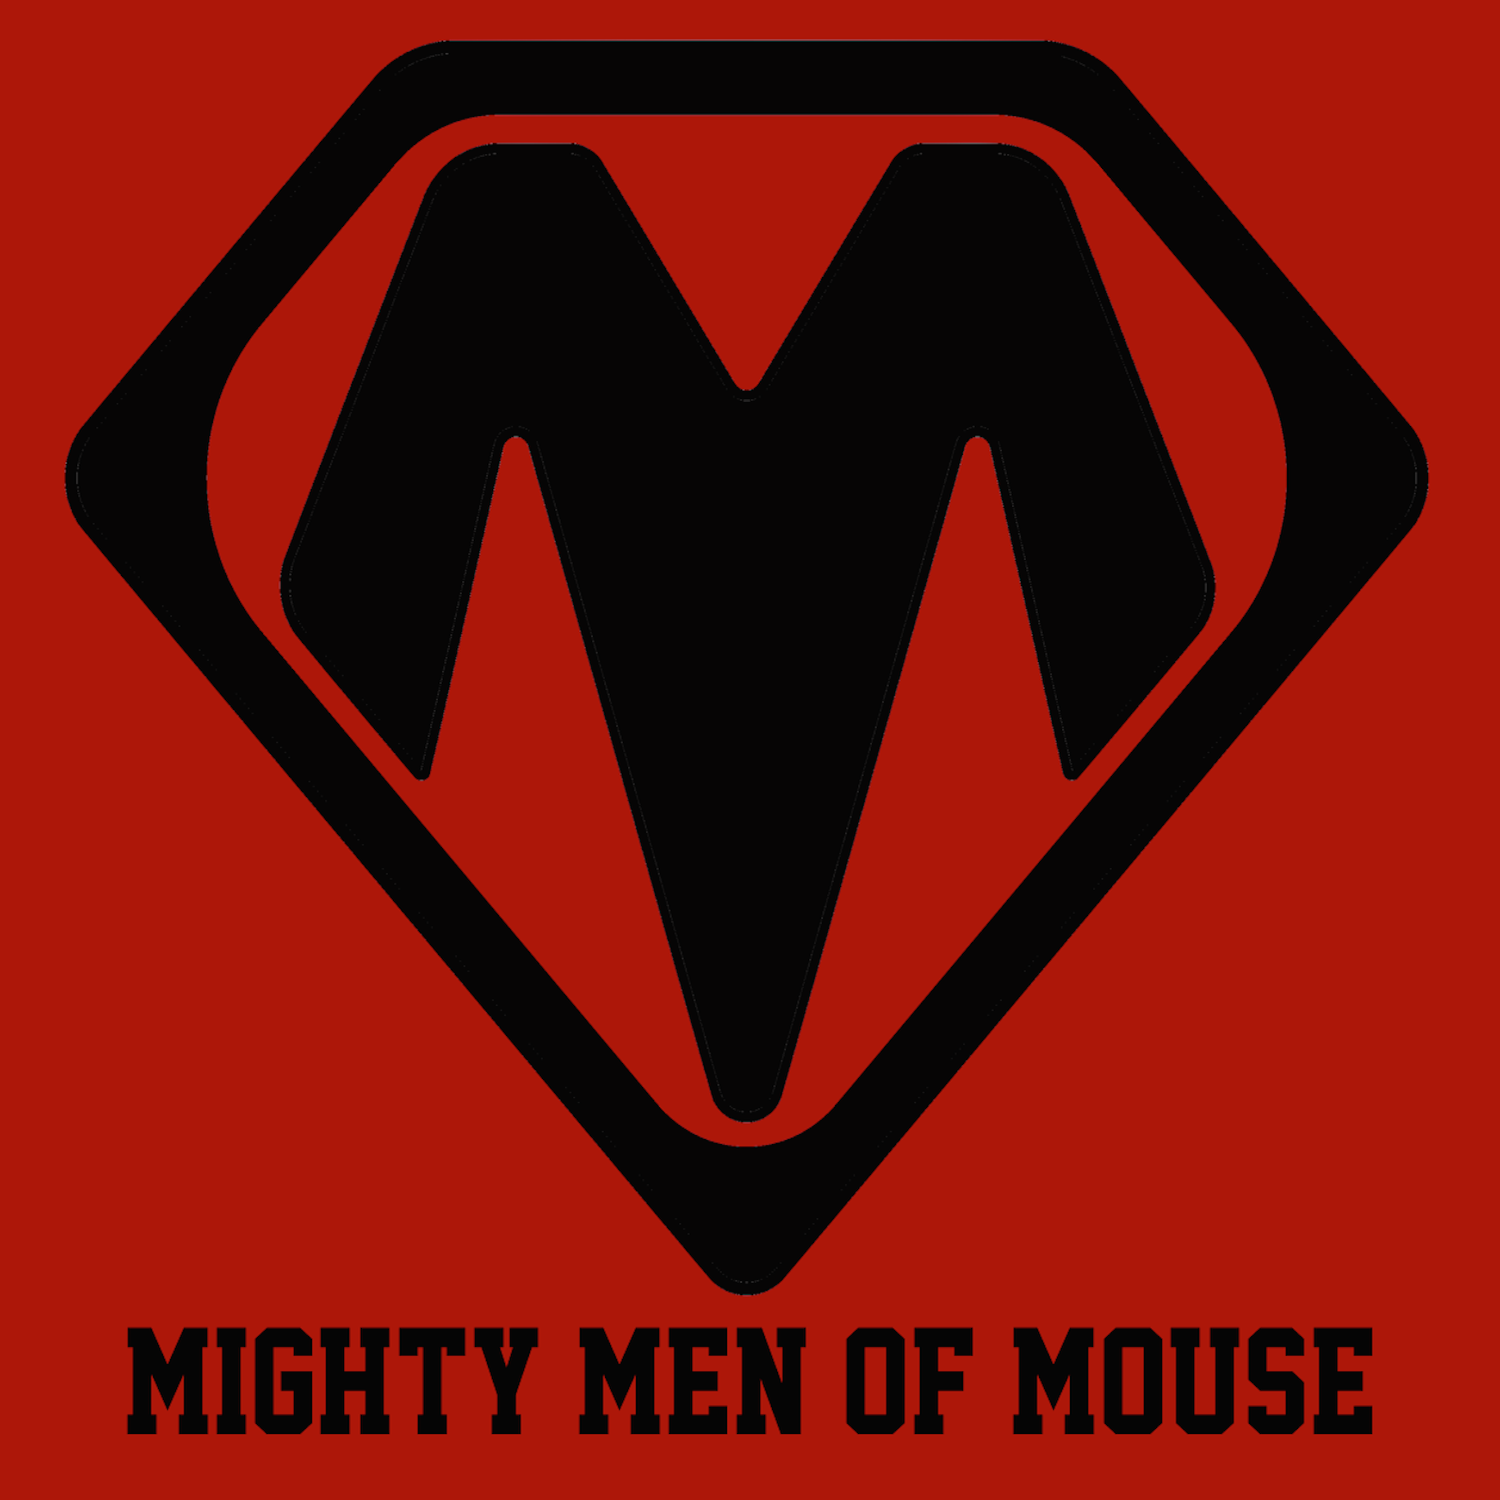 Mighty Men of Mouse show art